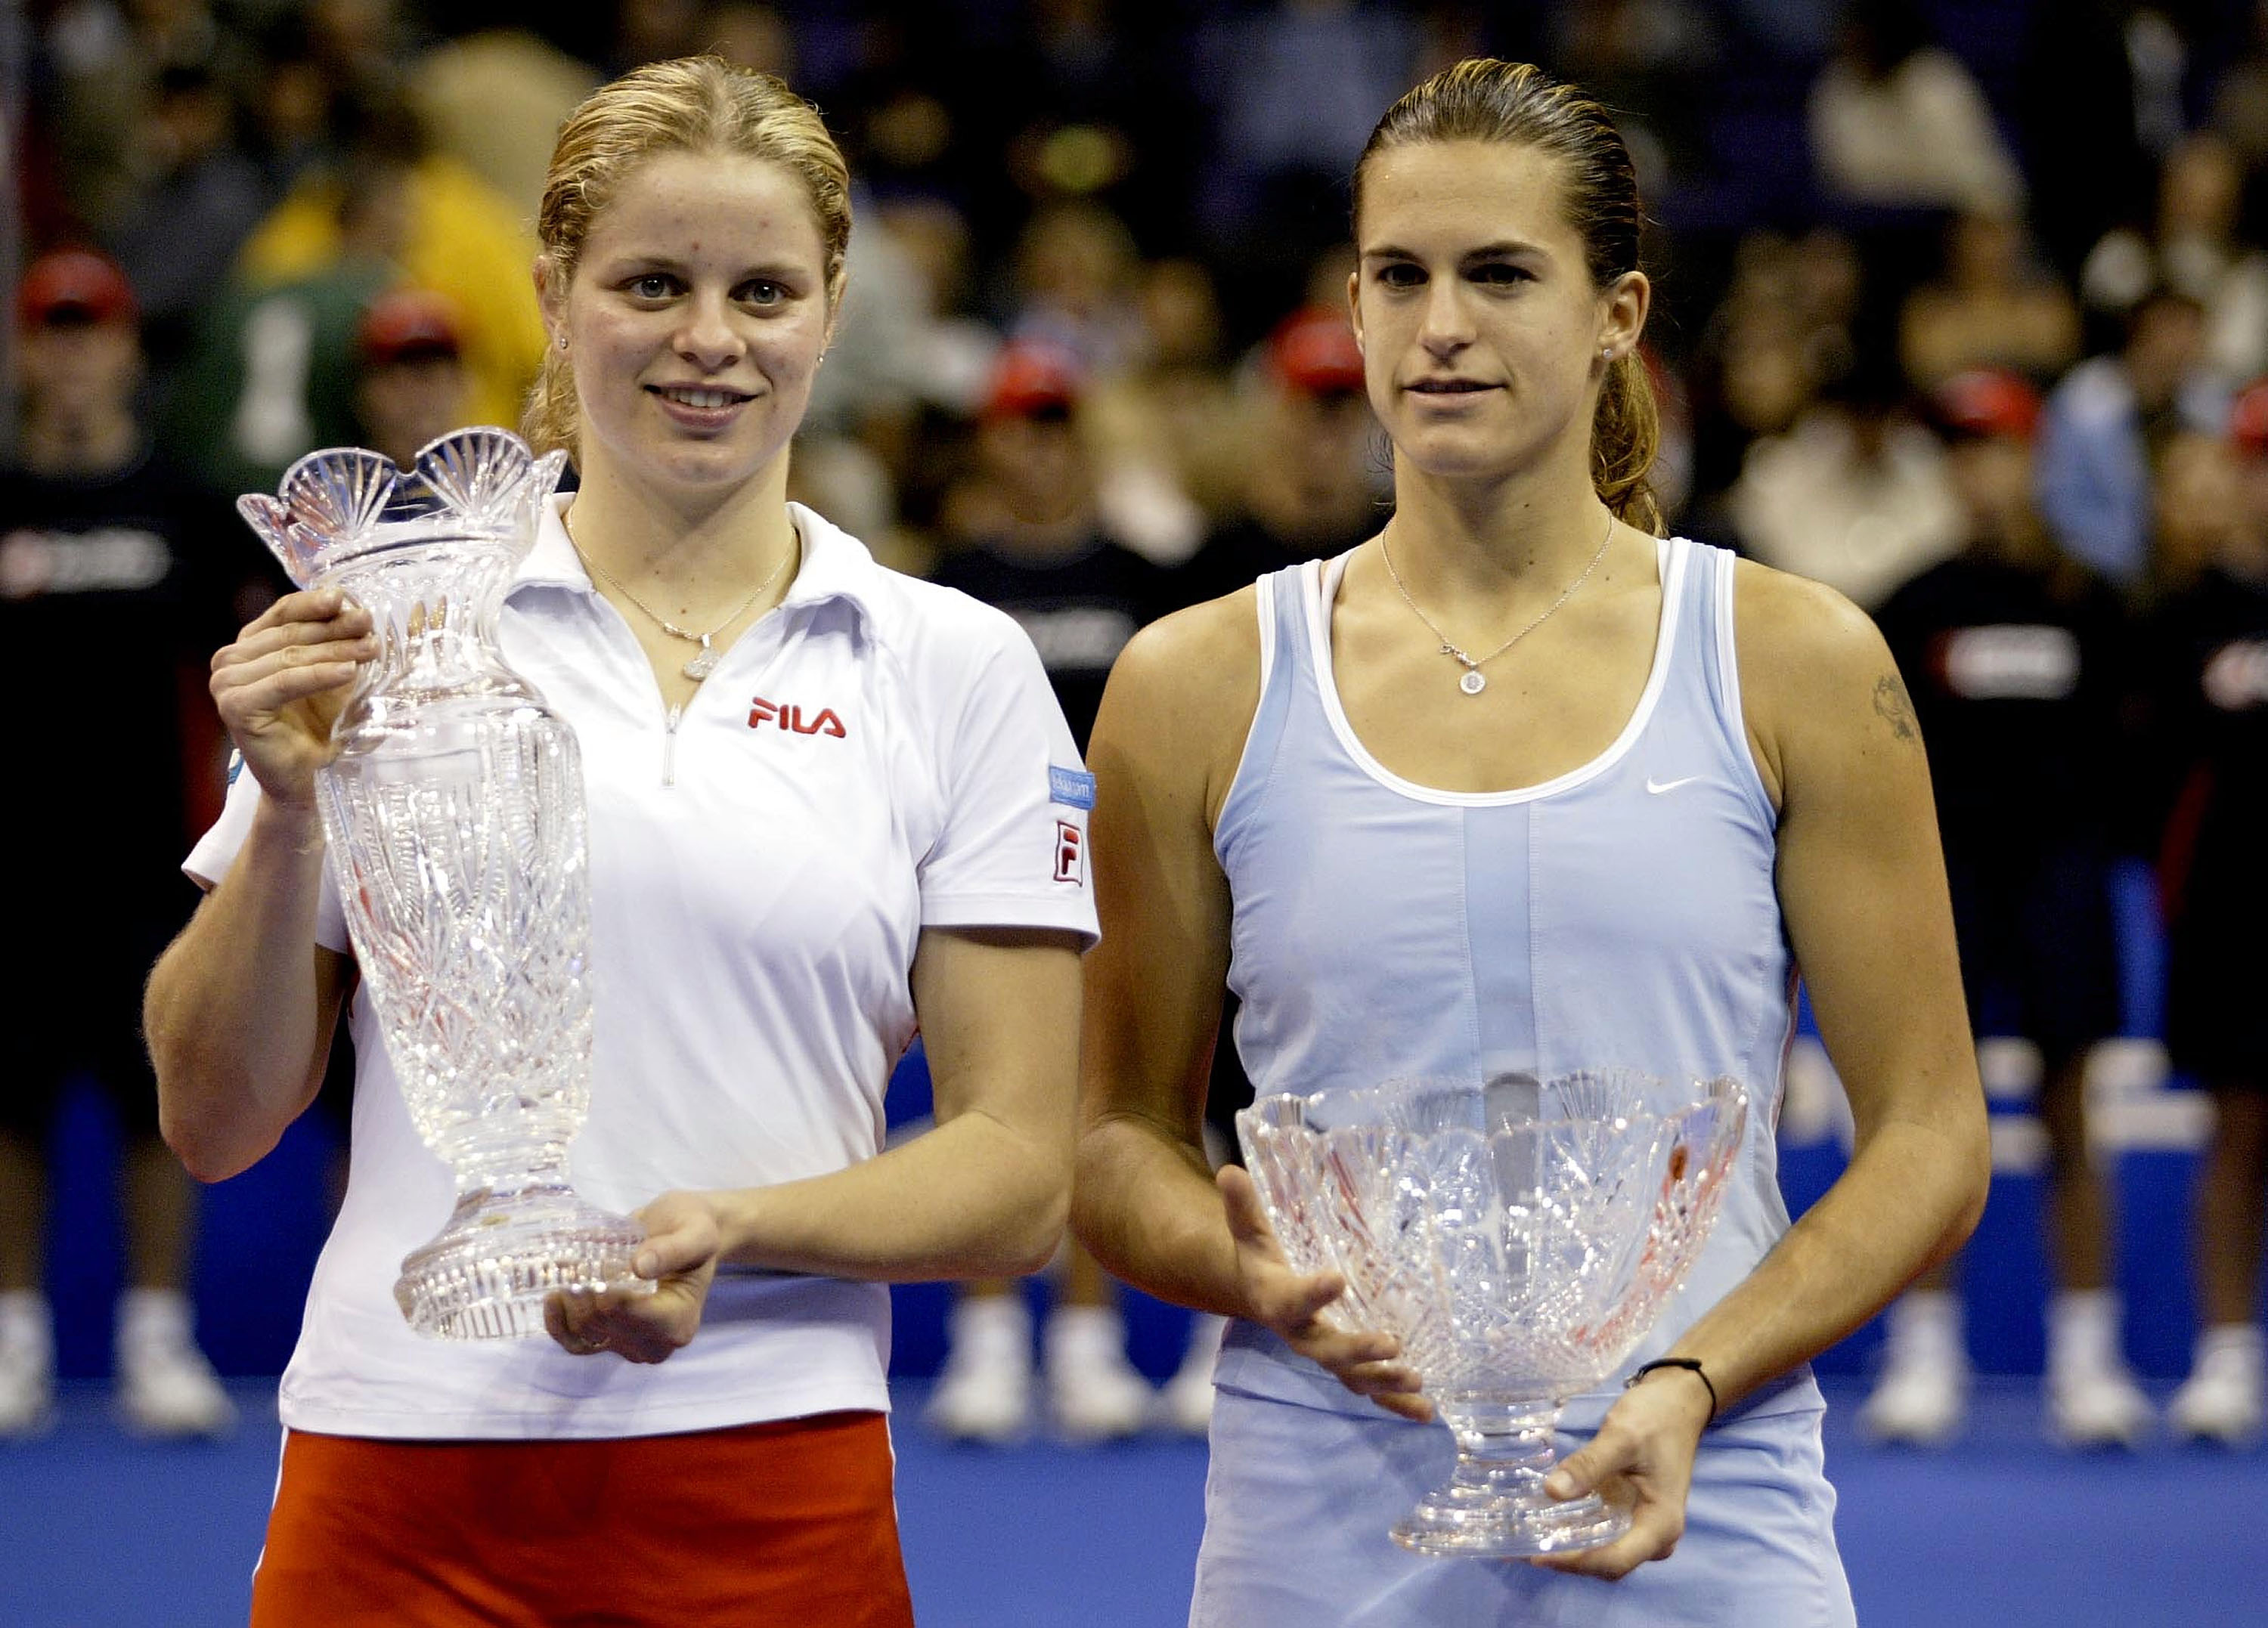 Kim Clijsters beat Amelie Mauresmo in the final and won $1 million, the largest prize purse ever at a women's only sporting event at the time.